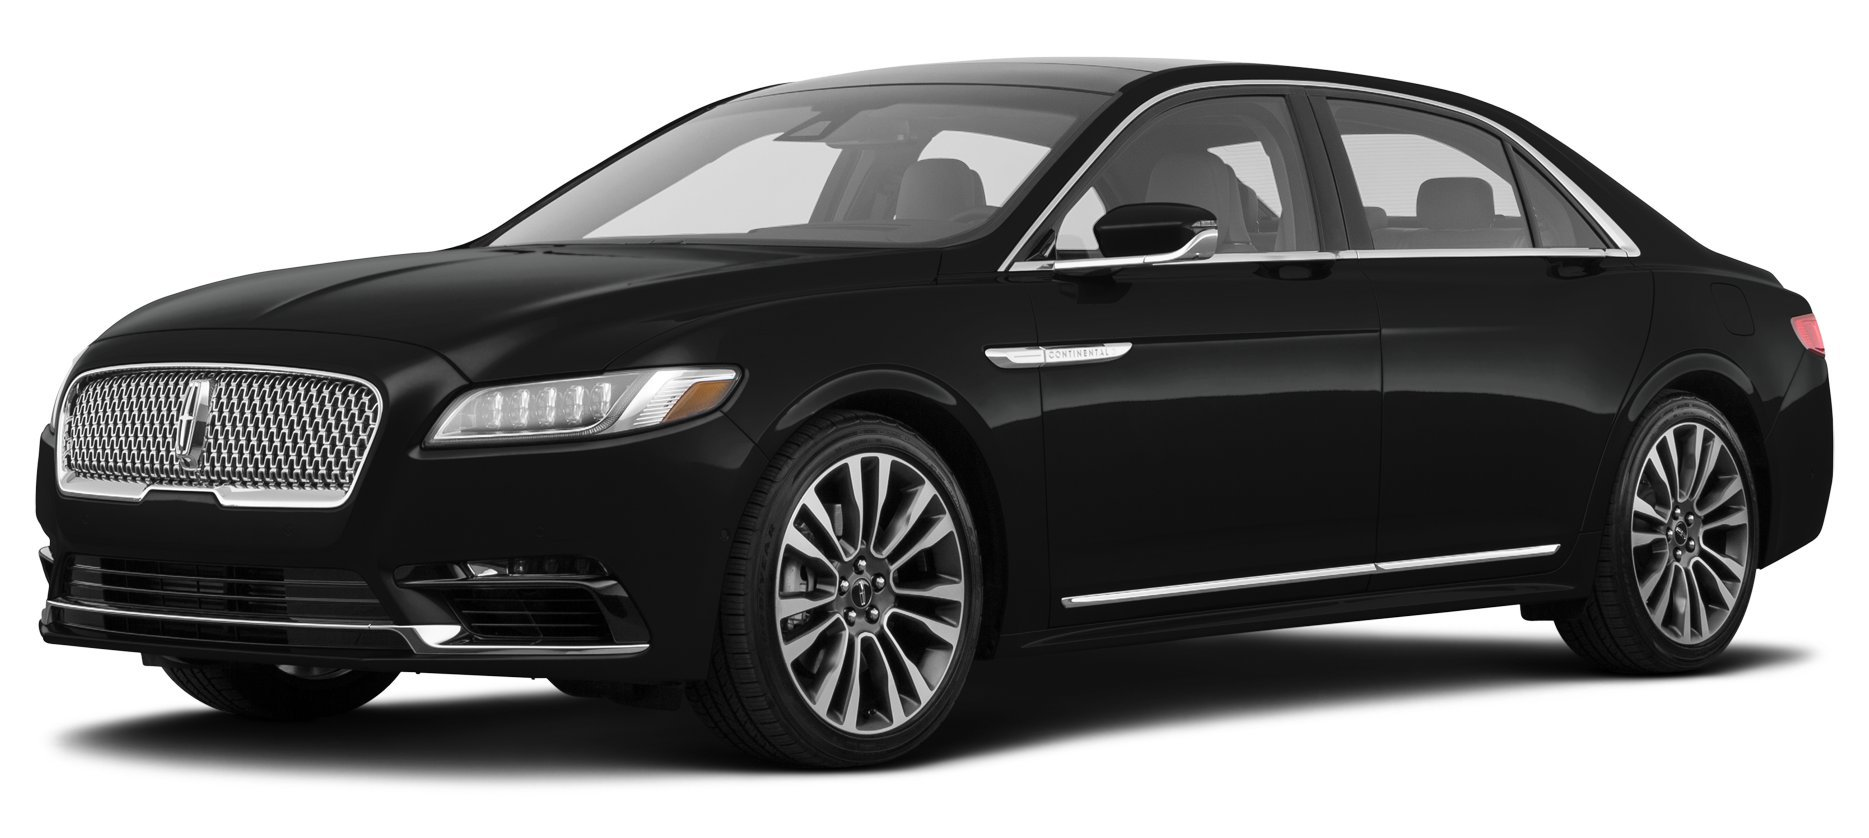 2018 Lincoln Continental Black Label, All Wheel Drive ...